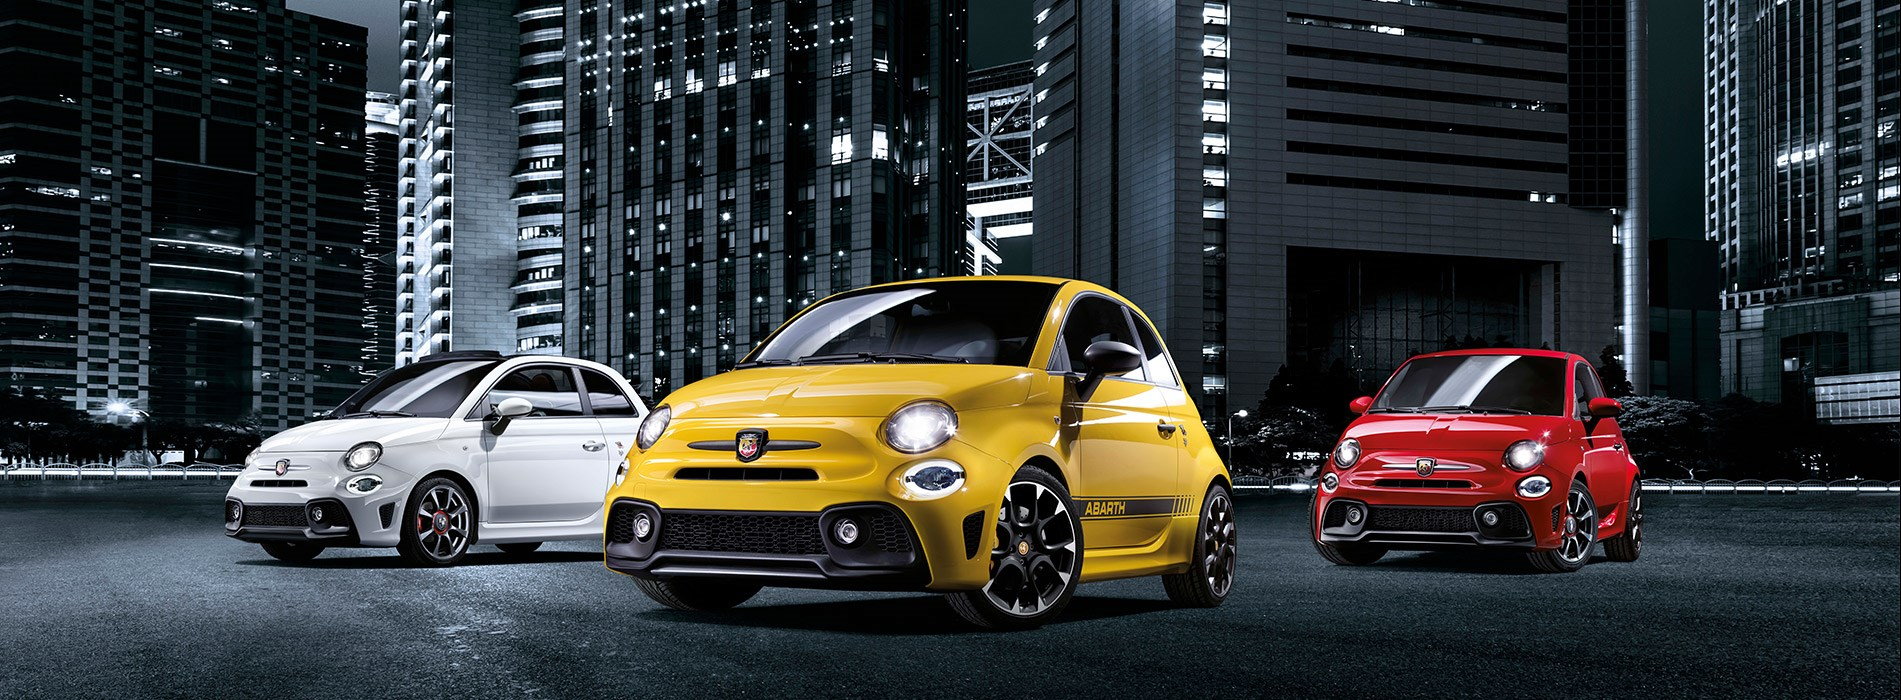 Abarth Hero Updated lrg